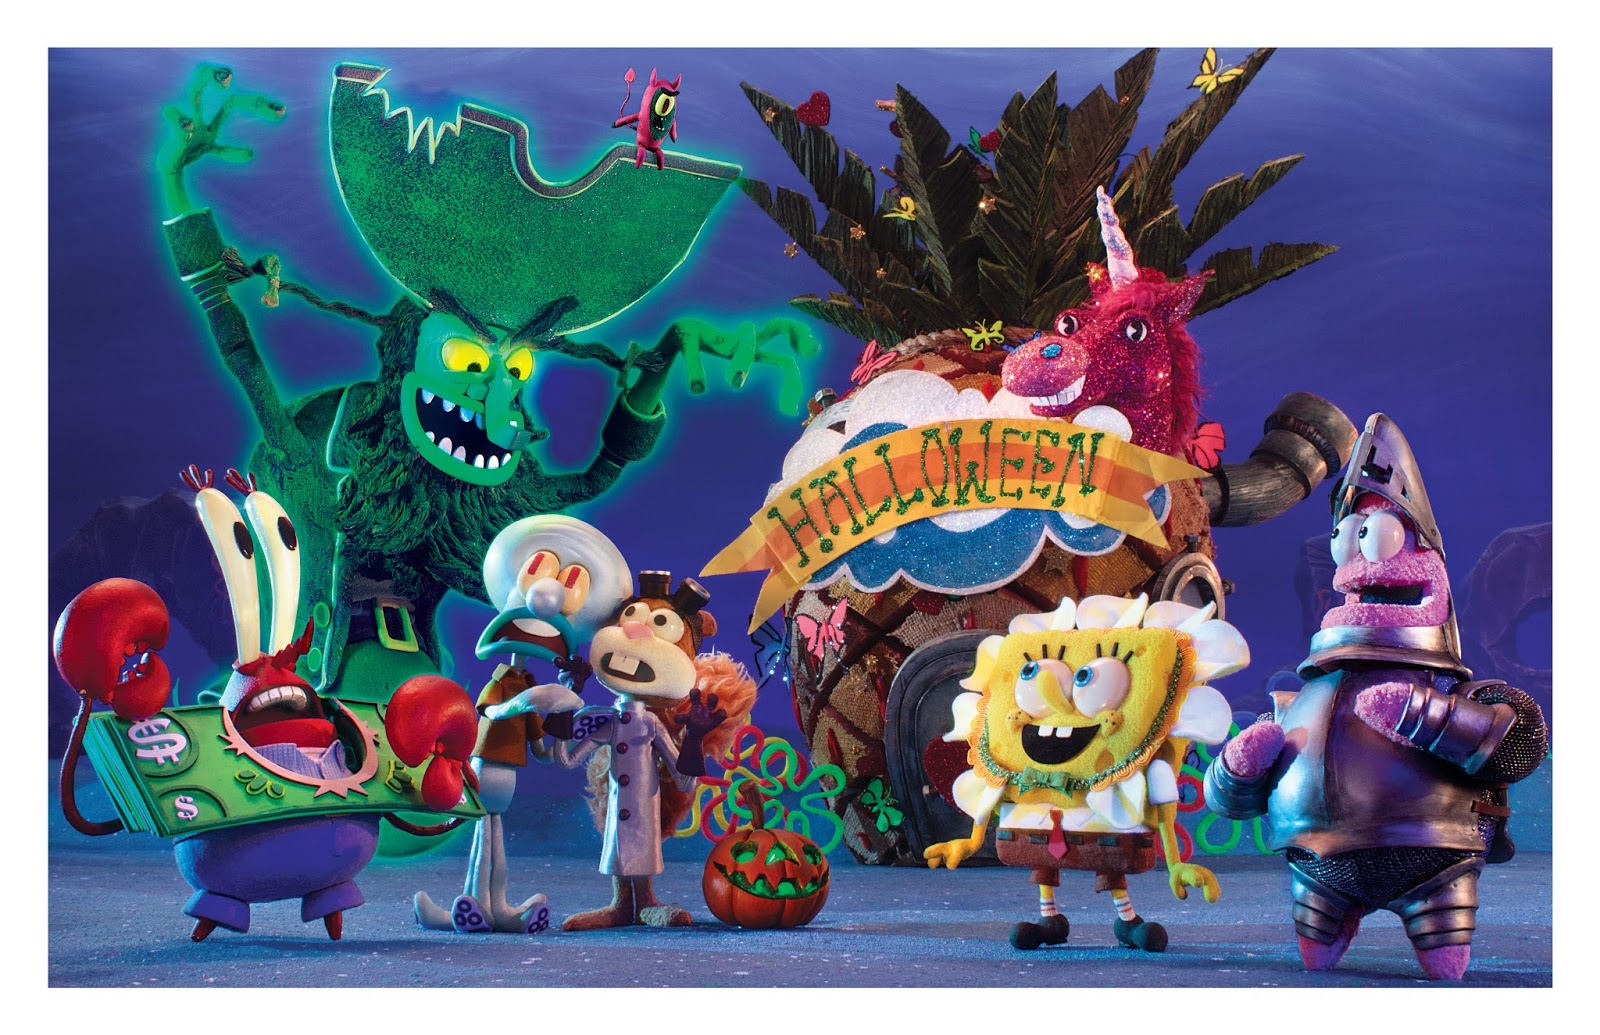 de6b8b1bd9 Nickelodeon treats viewers to a spooky stop-motion special with the  premiere of SpongeBob SquarePants  The Legend of Boo-Kini Bottom